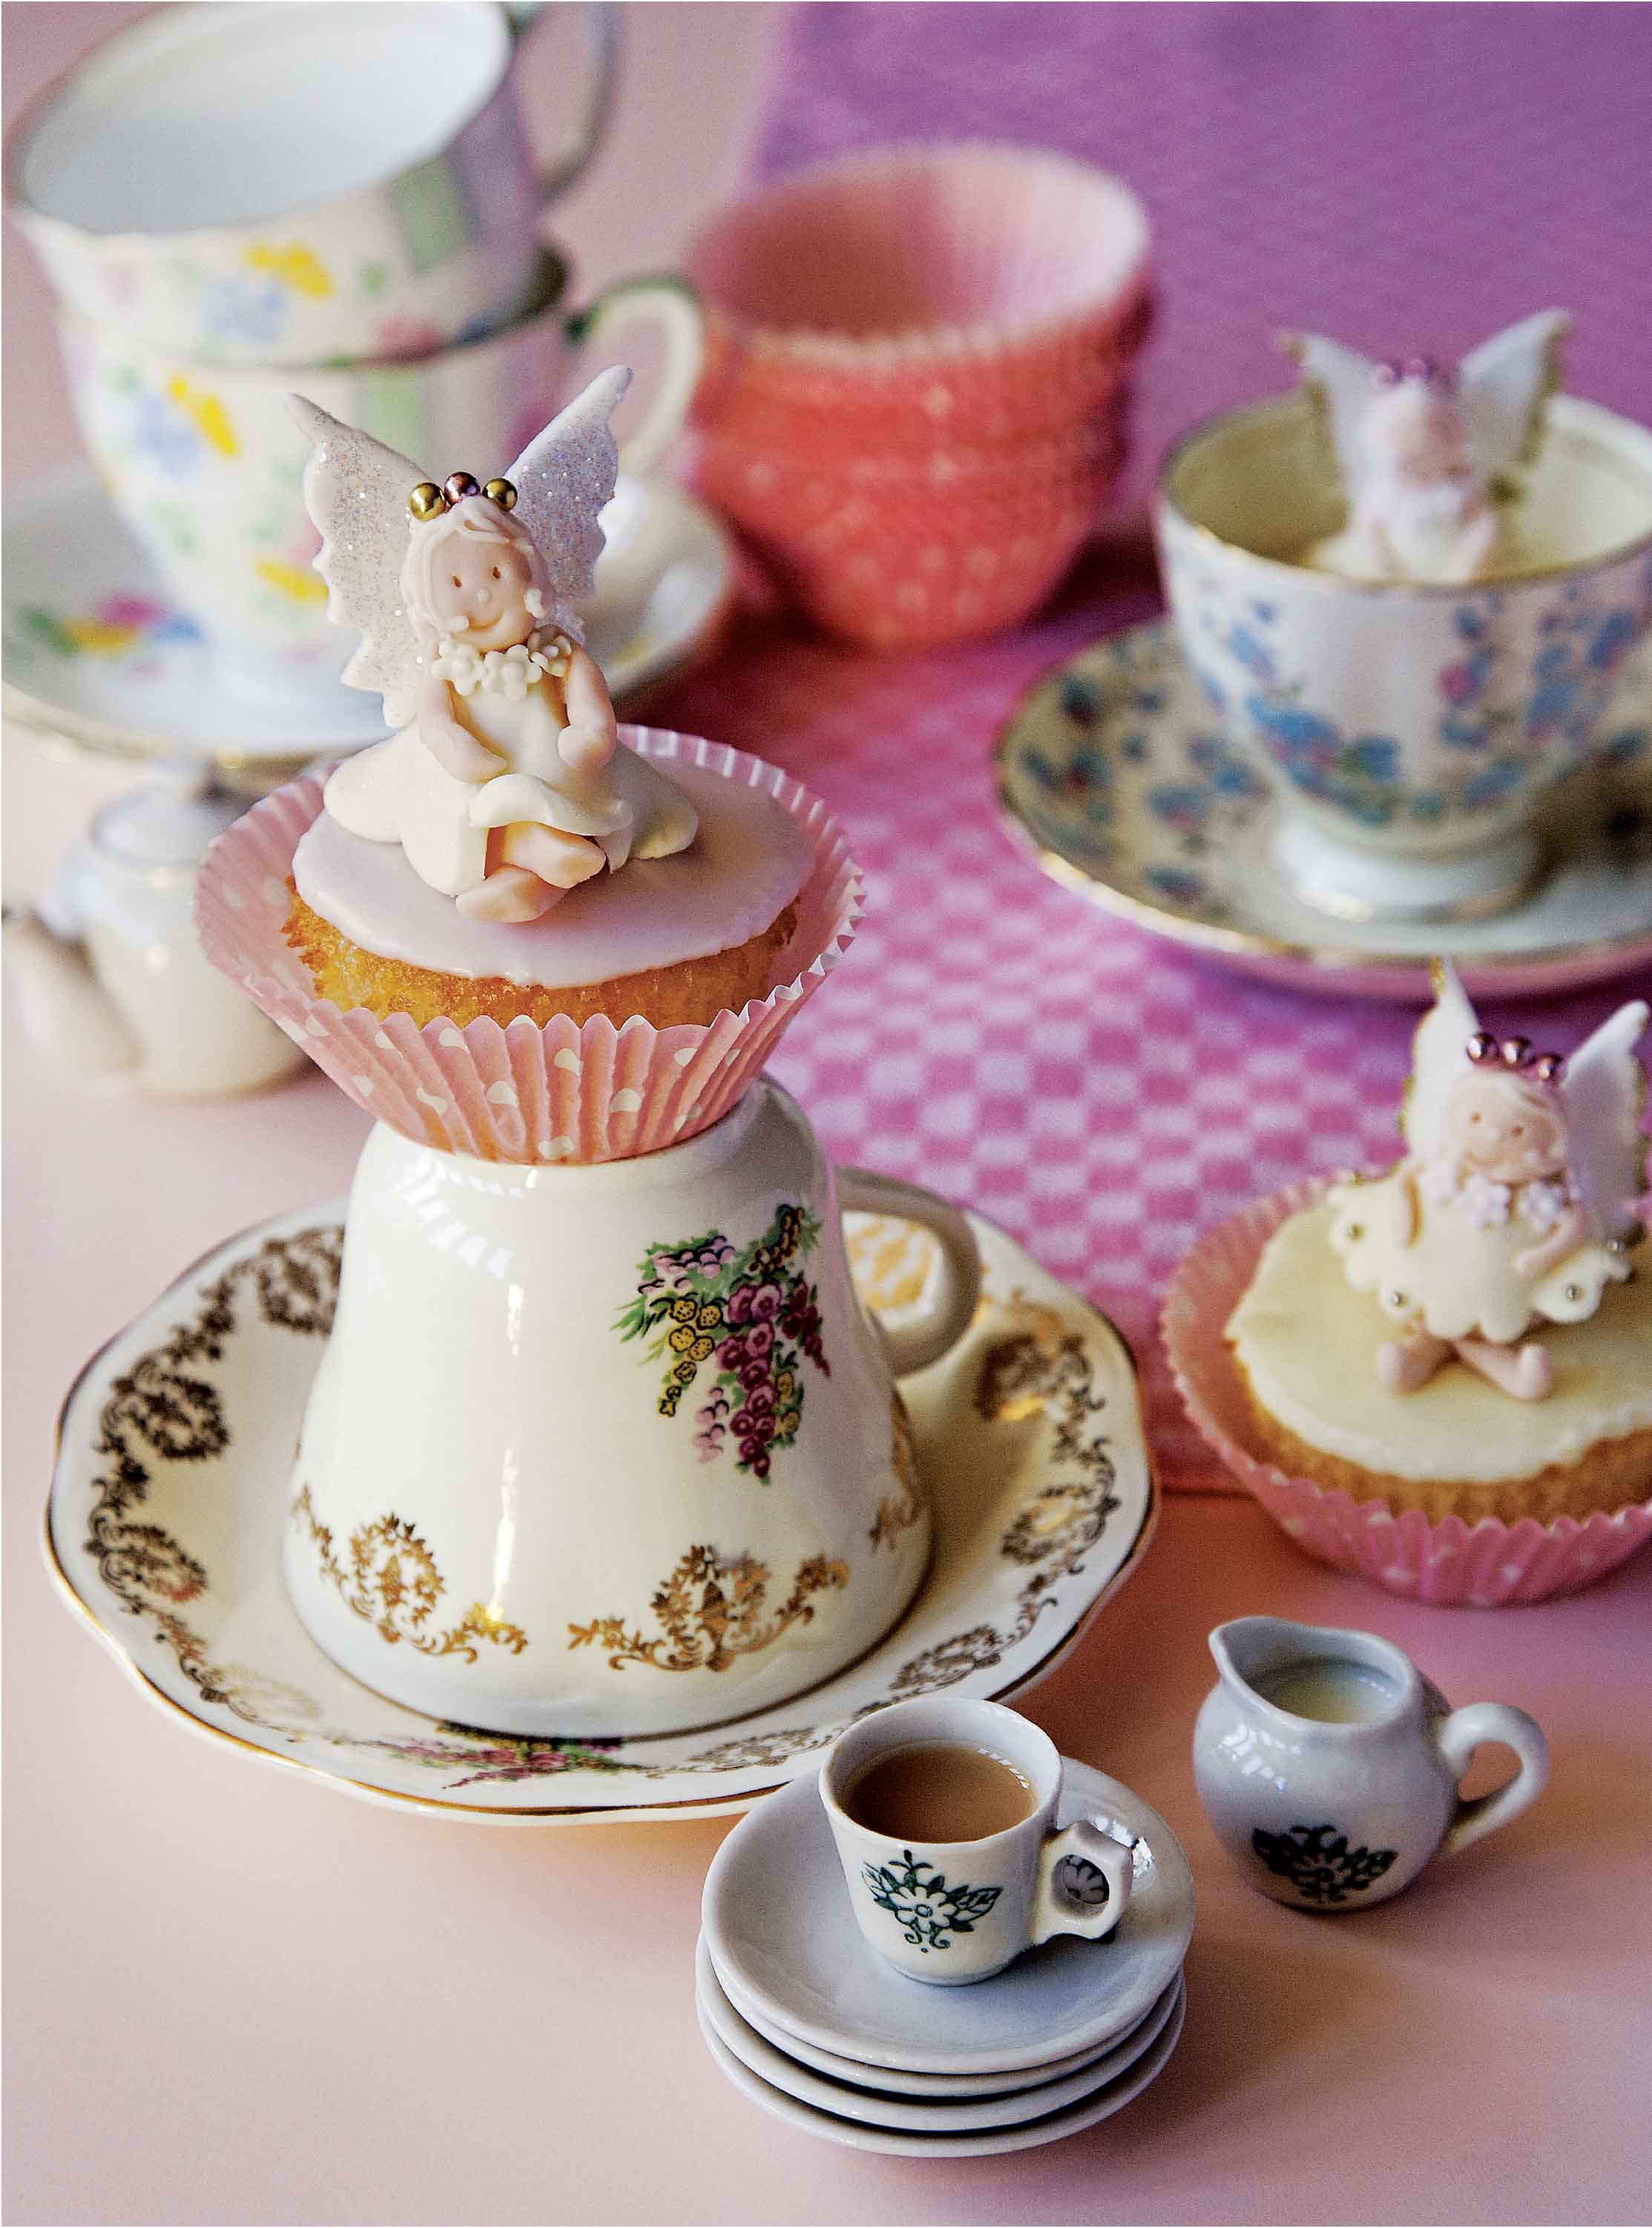 Fairies on fairy cakes